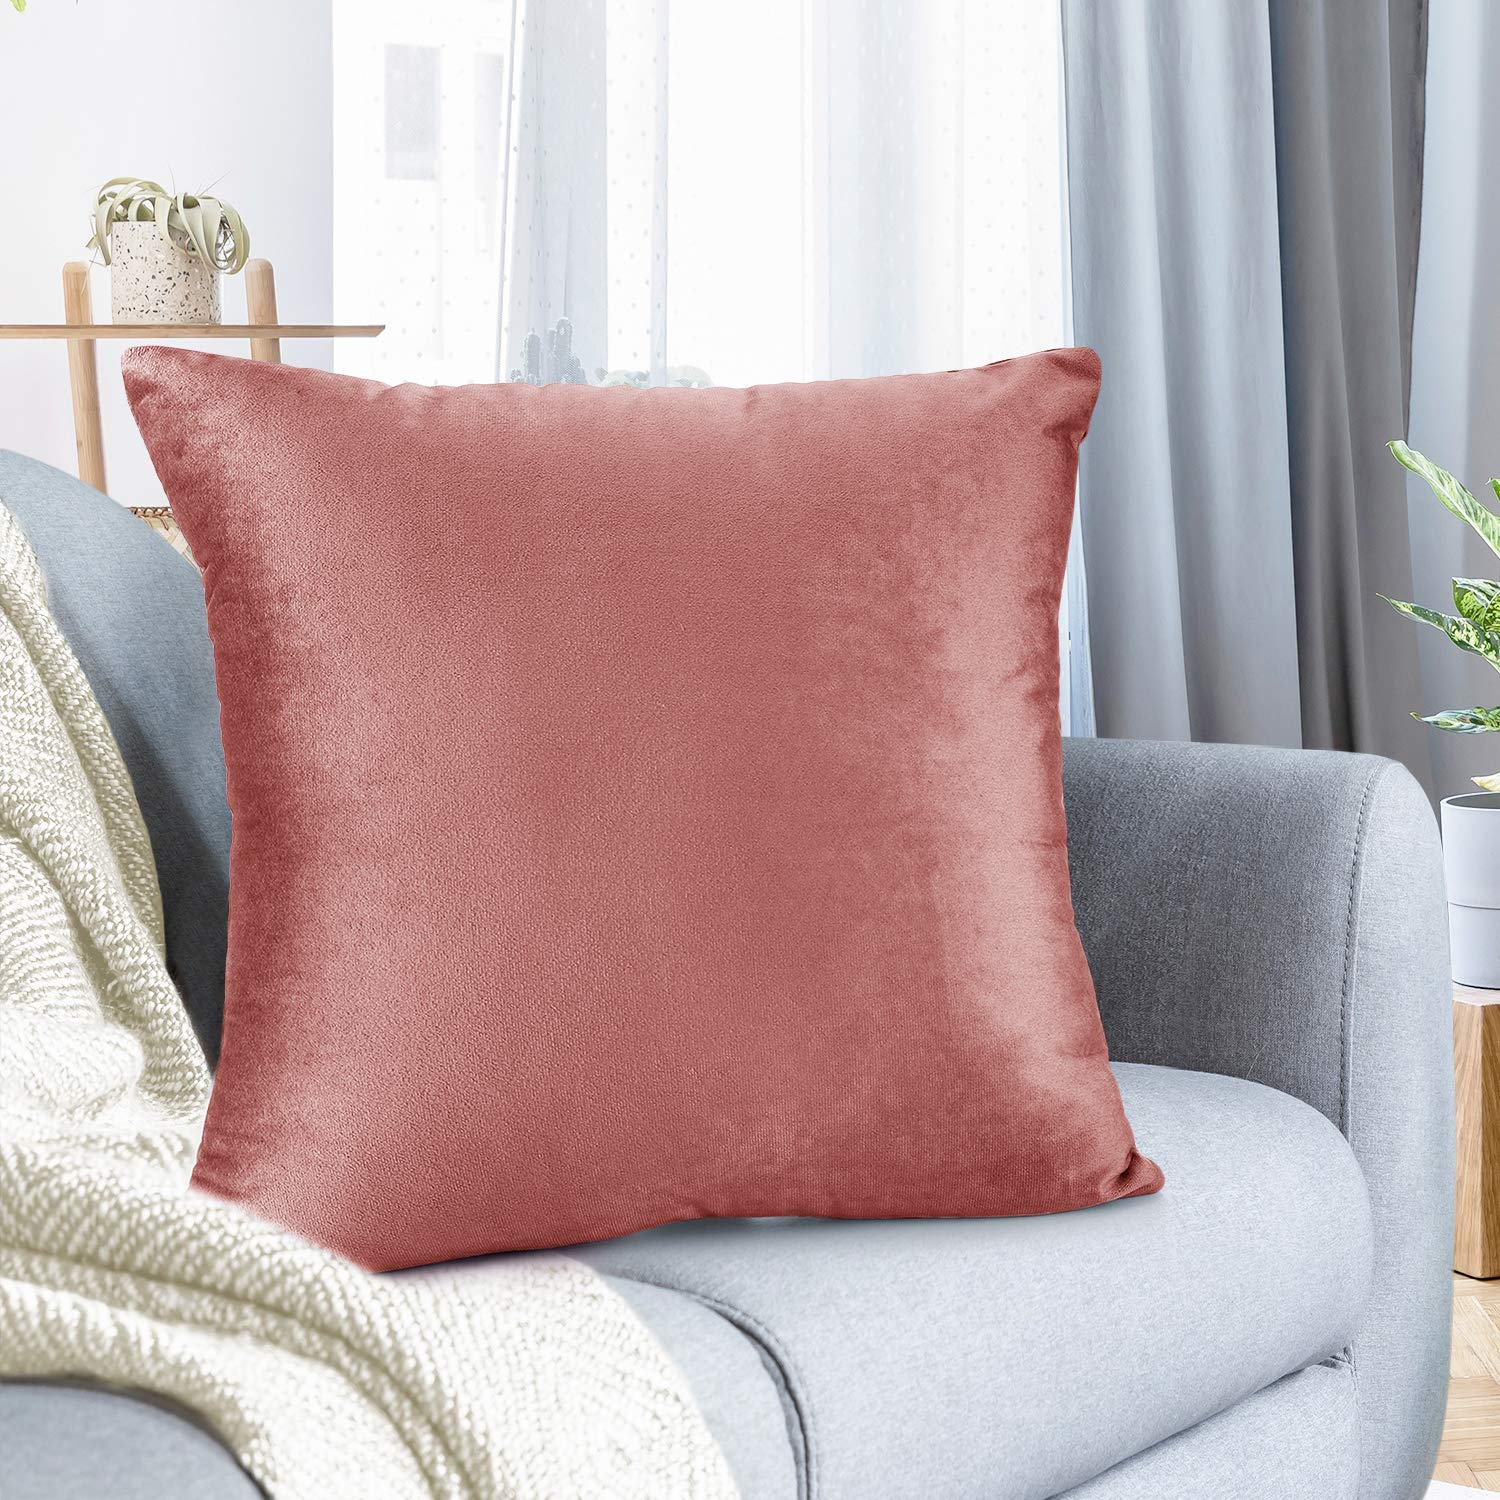 """Nestl Bedding Throw Pillow Cover 24"""" x 24"""" Soft Square Decorative Throw Pillow Covers Cozy Velvet Cushion Case for Sofa Couch Bedroom - Misty Rose"""